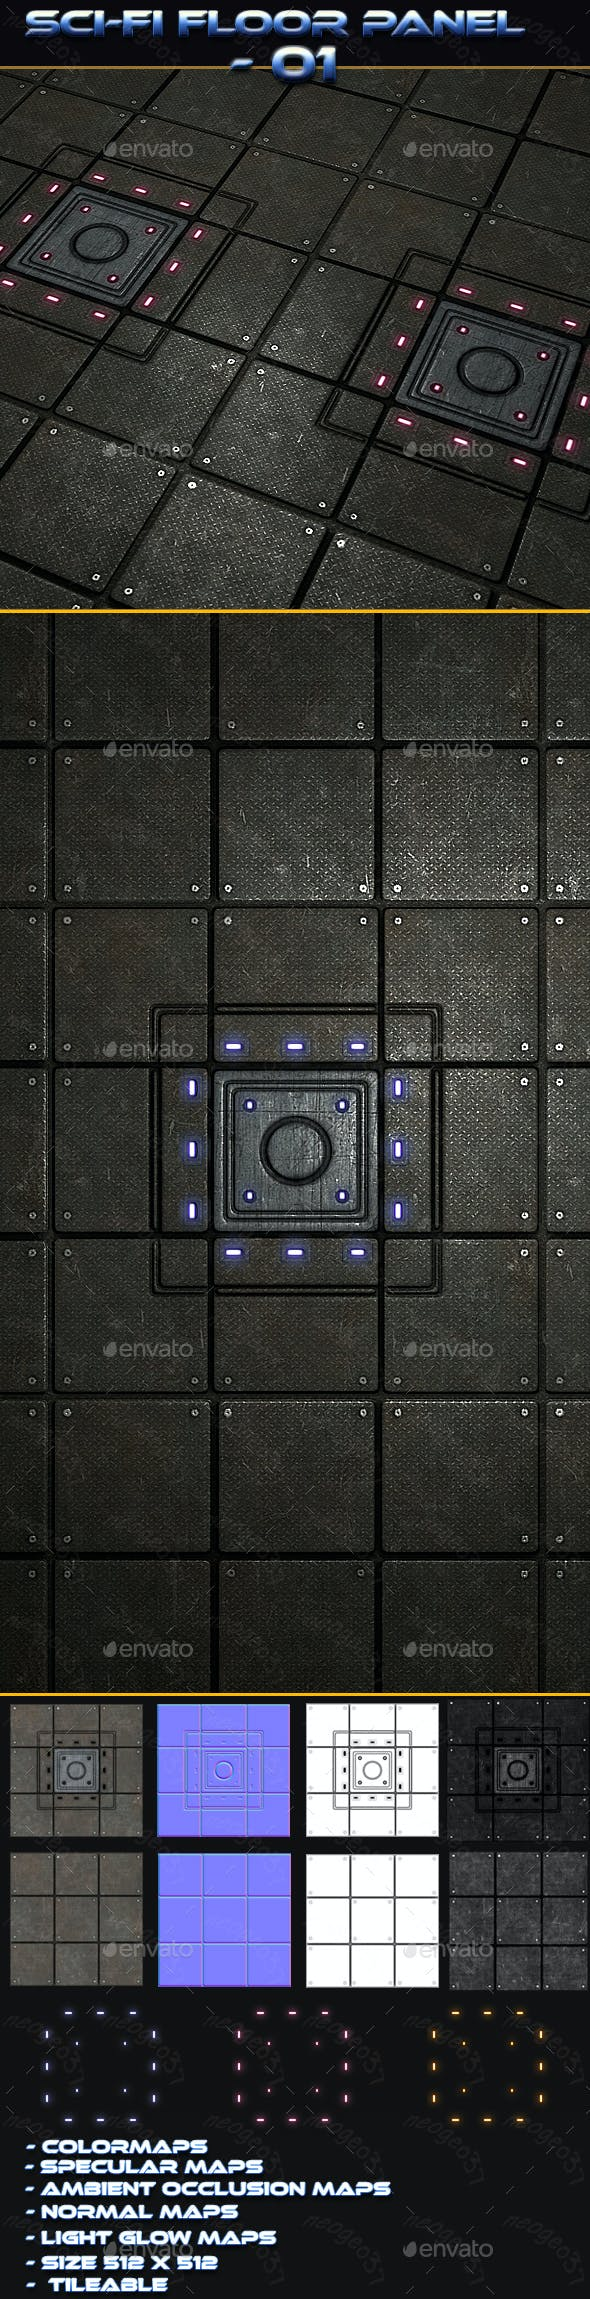 Sci-fi Floor Panel 01 - 3DOcean Item for Sale